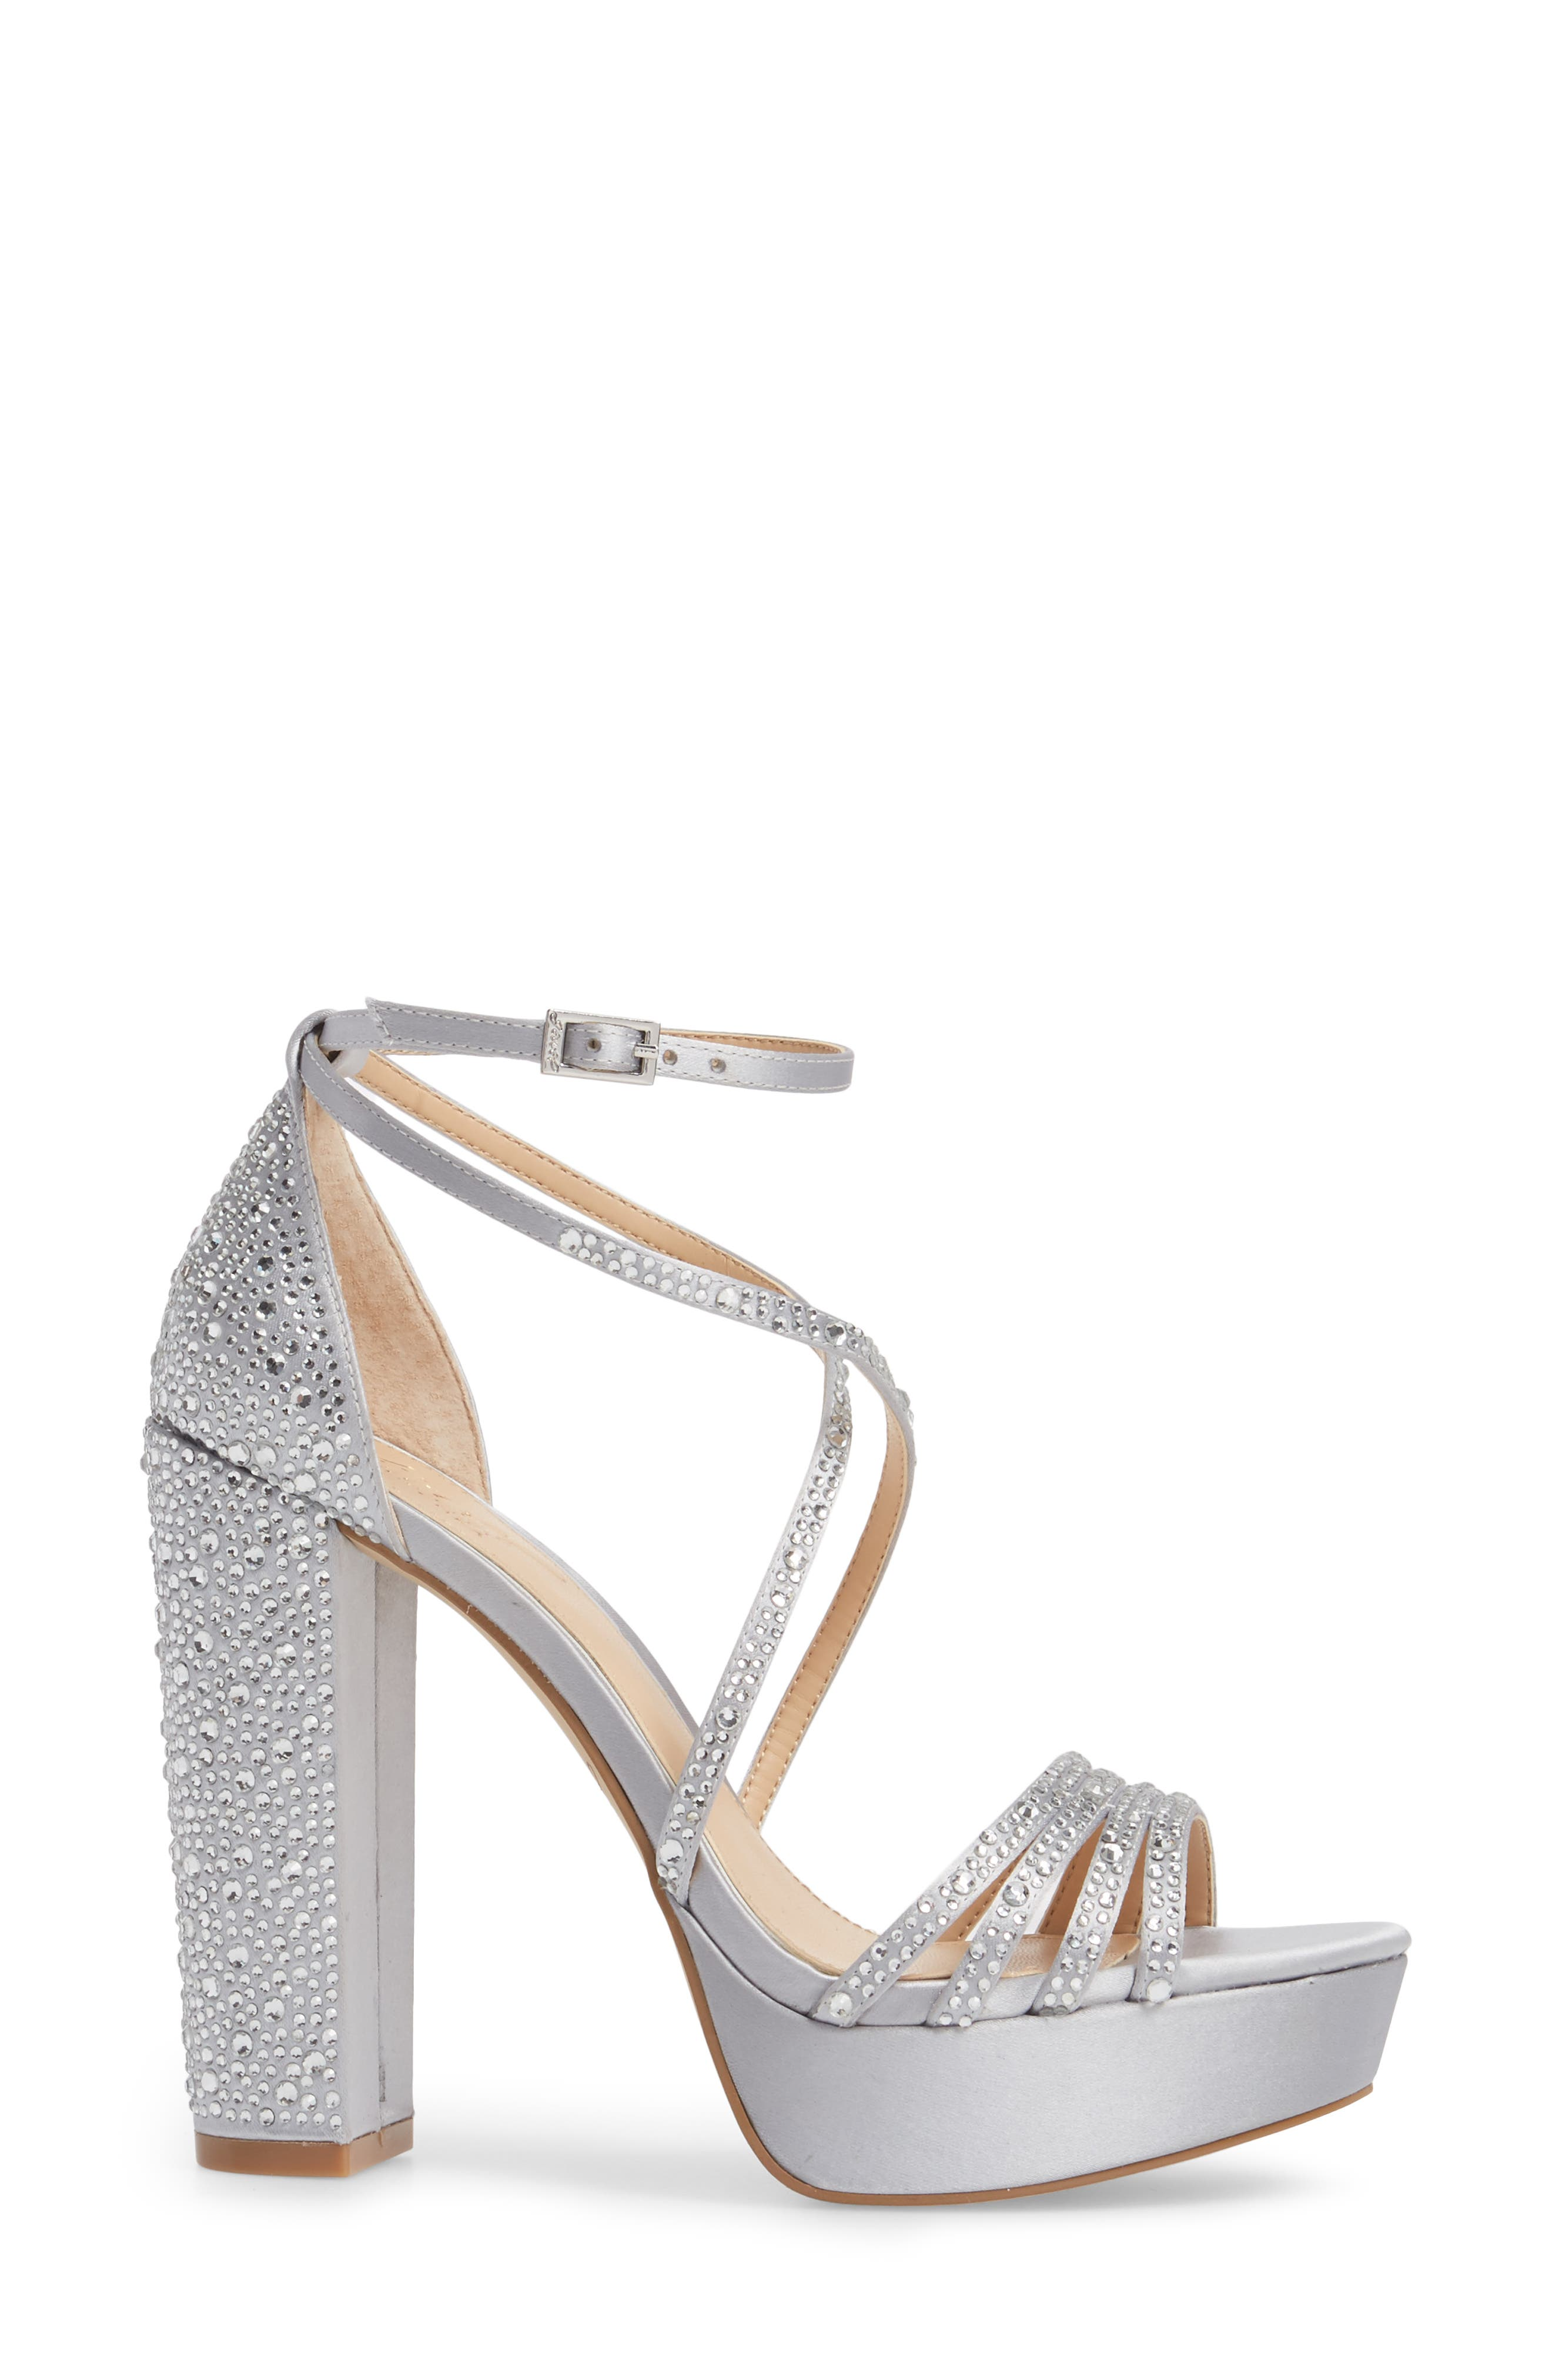 Tarah Crystal Embellished Platform Sandal,                             Alternate thumbnail 8, color,